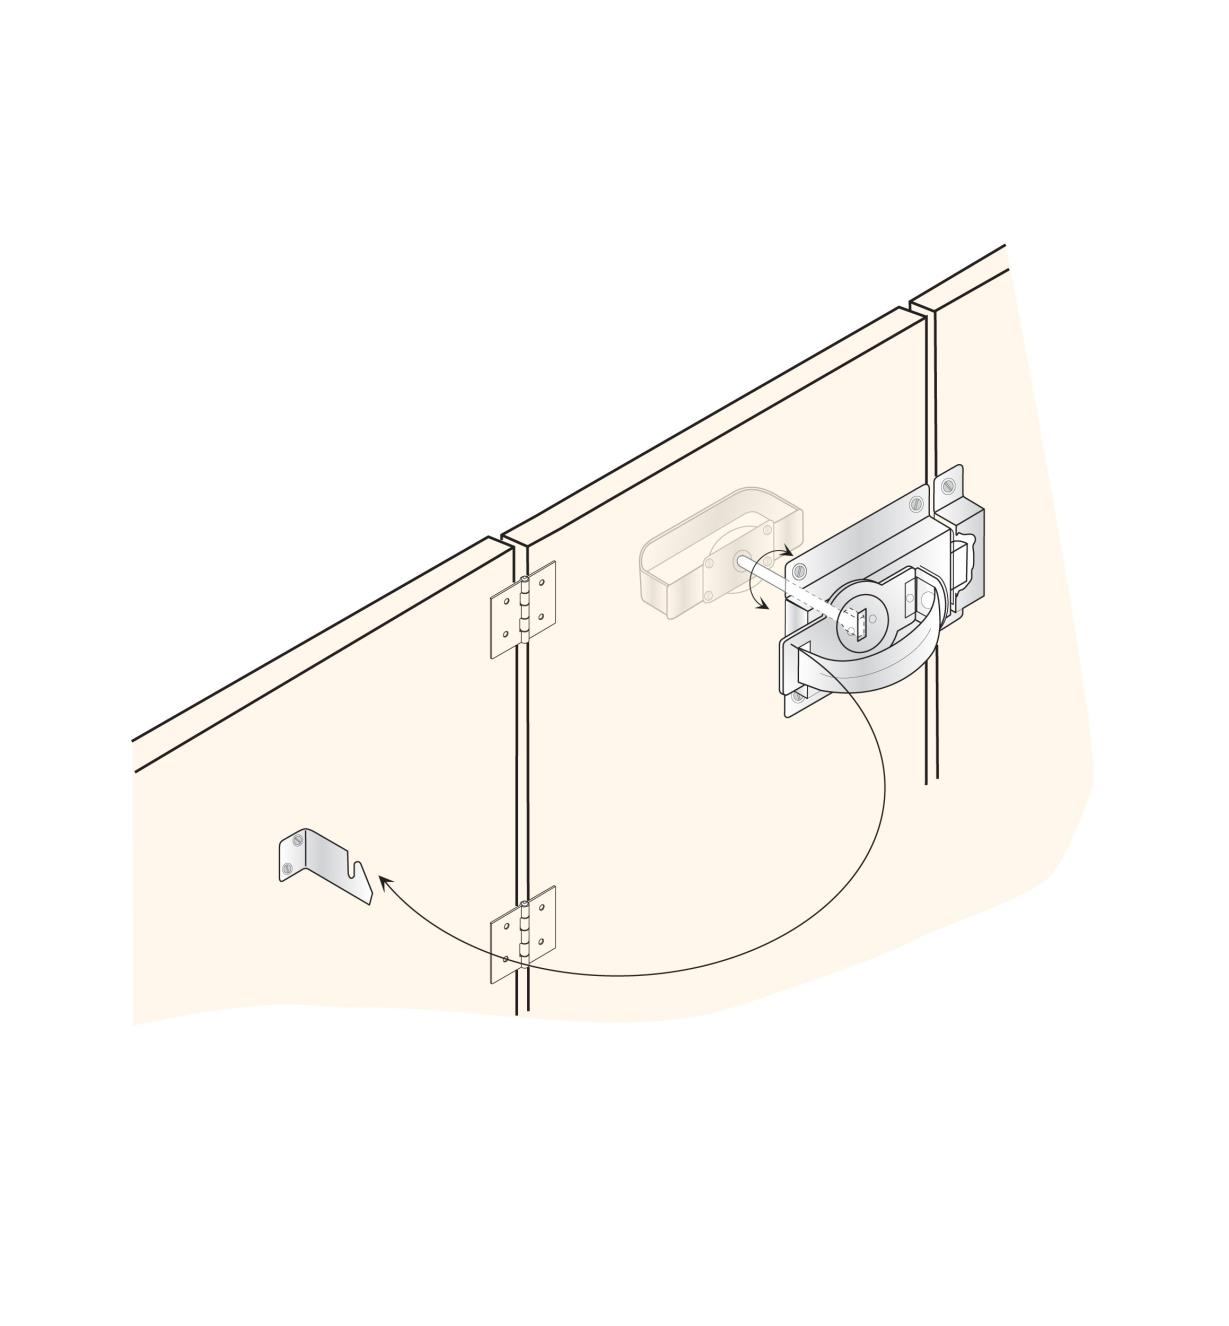 01S1010 - Gate Thumb Latch & Handle